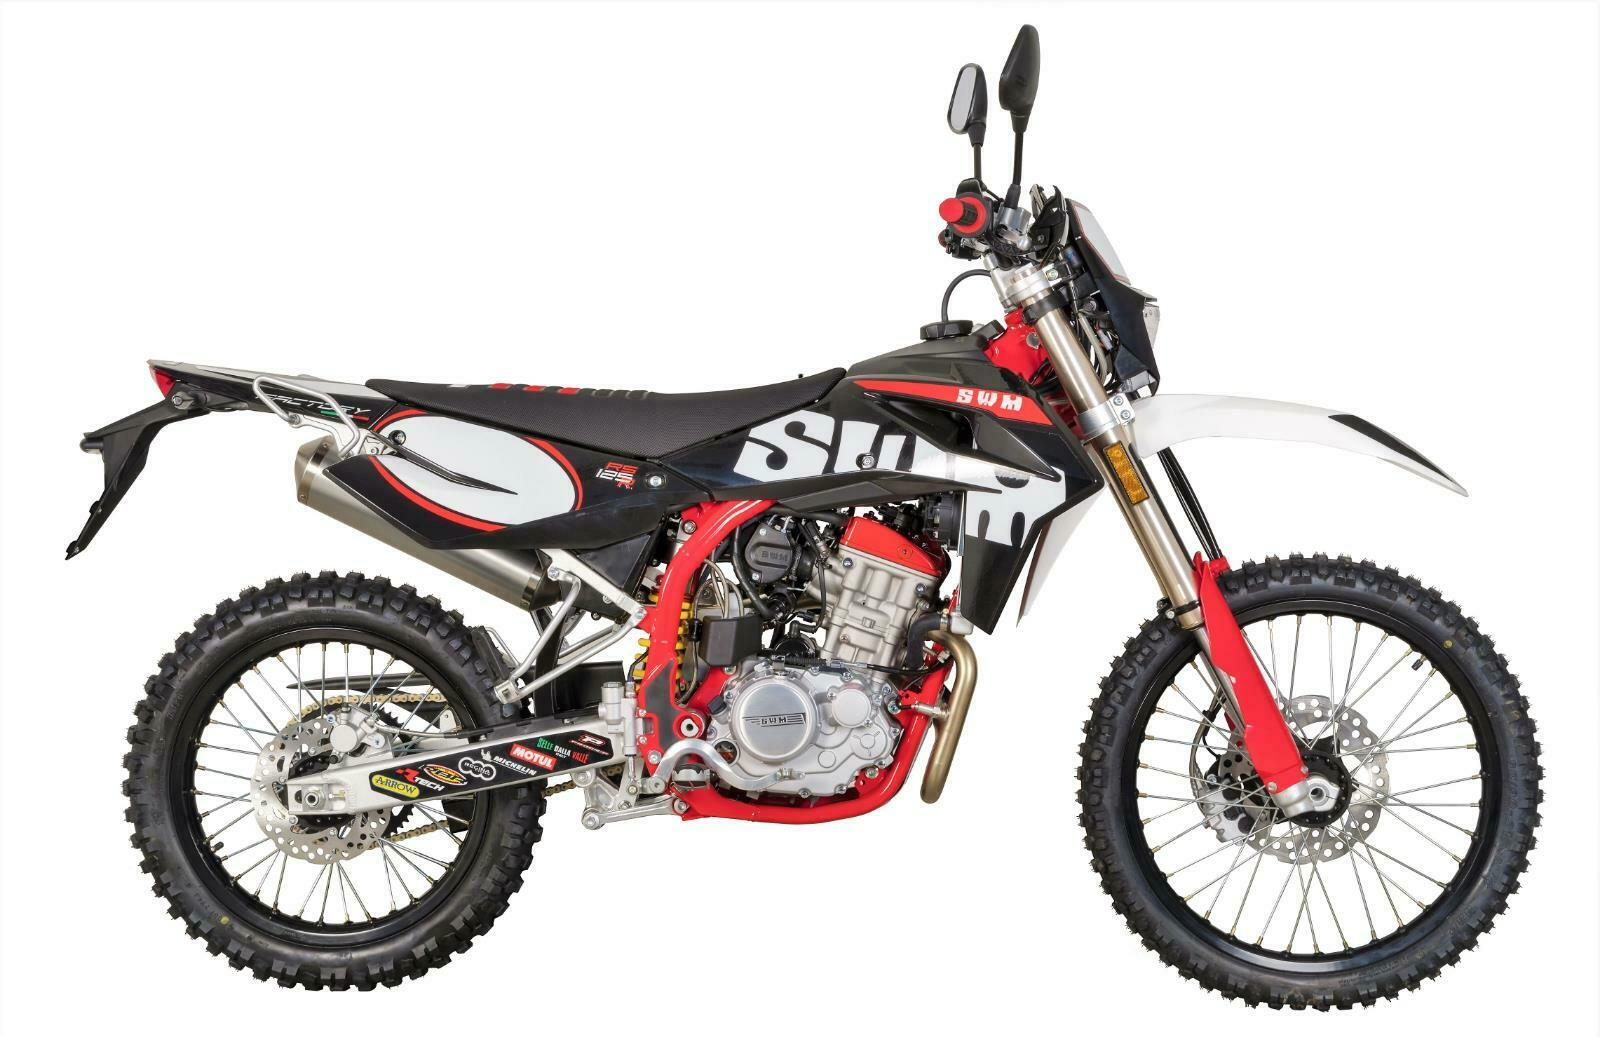 RS 125 R FACTORY Racing